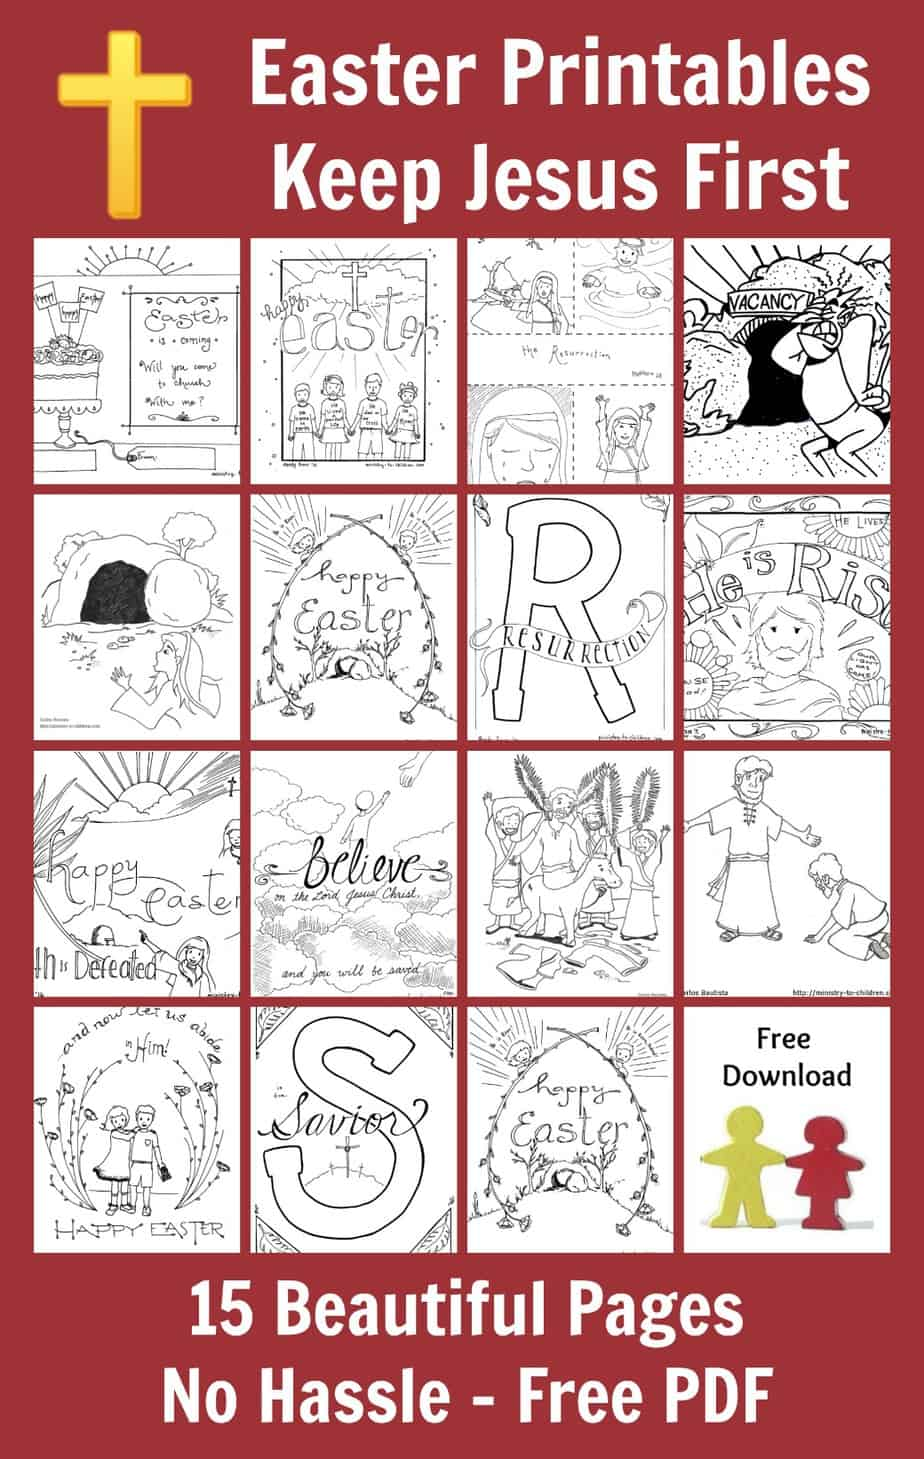 photograph regarding Free Printable Children's Church Curriculum referred to as 15 Easter Coloring Internet pages [Spiritual] Totally free Printables for Little ones